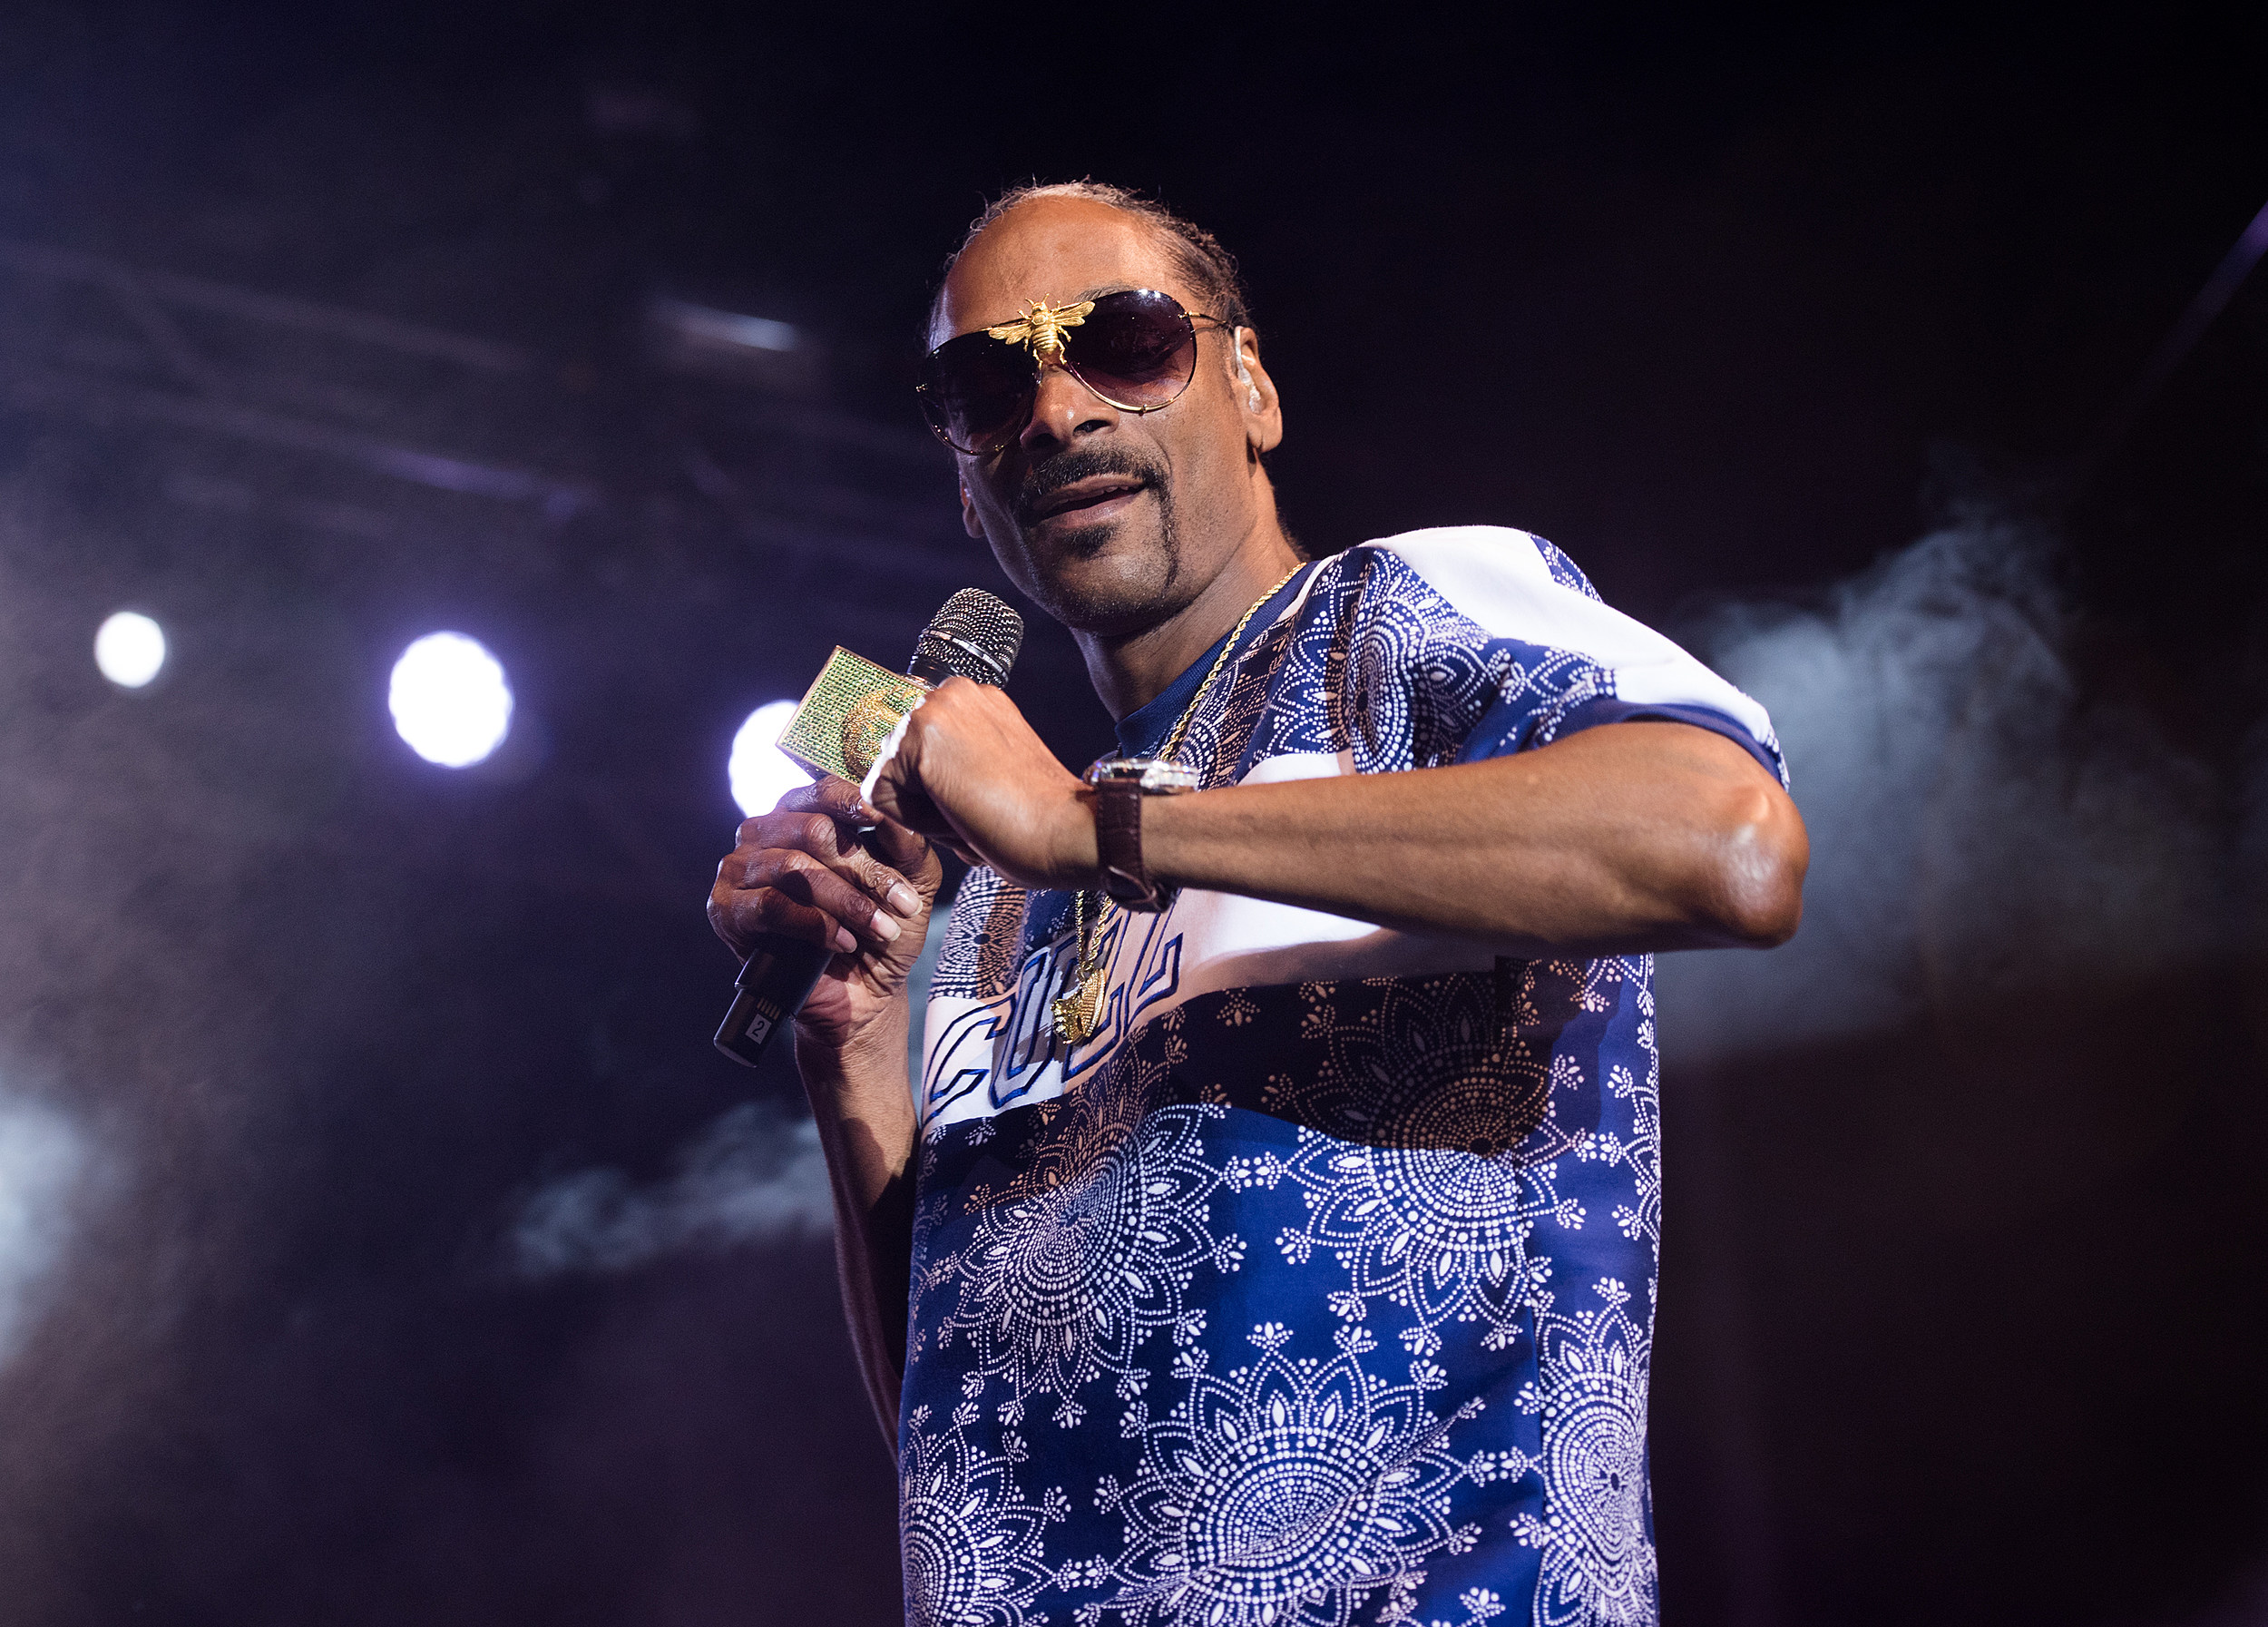 Snoop Dogg To Perform At Sturgis Motorcycle Rally